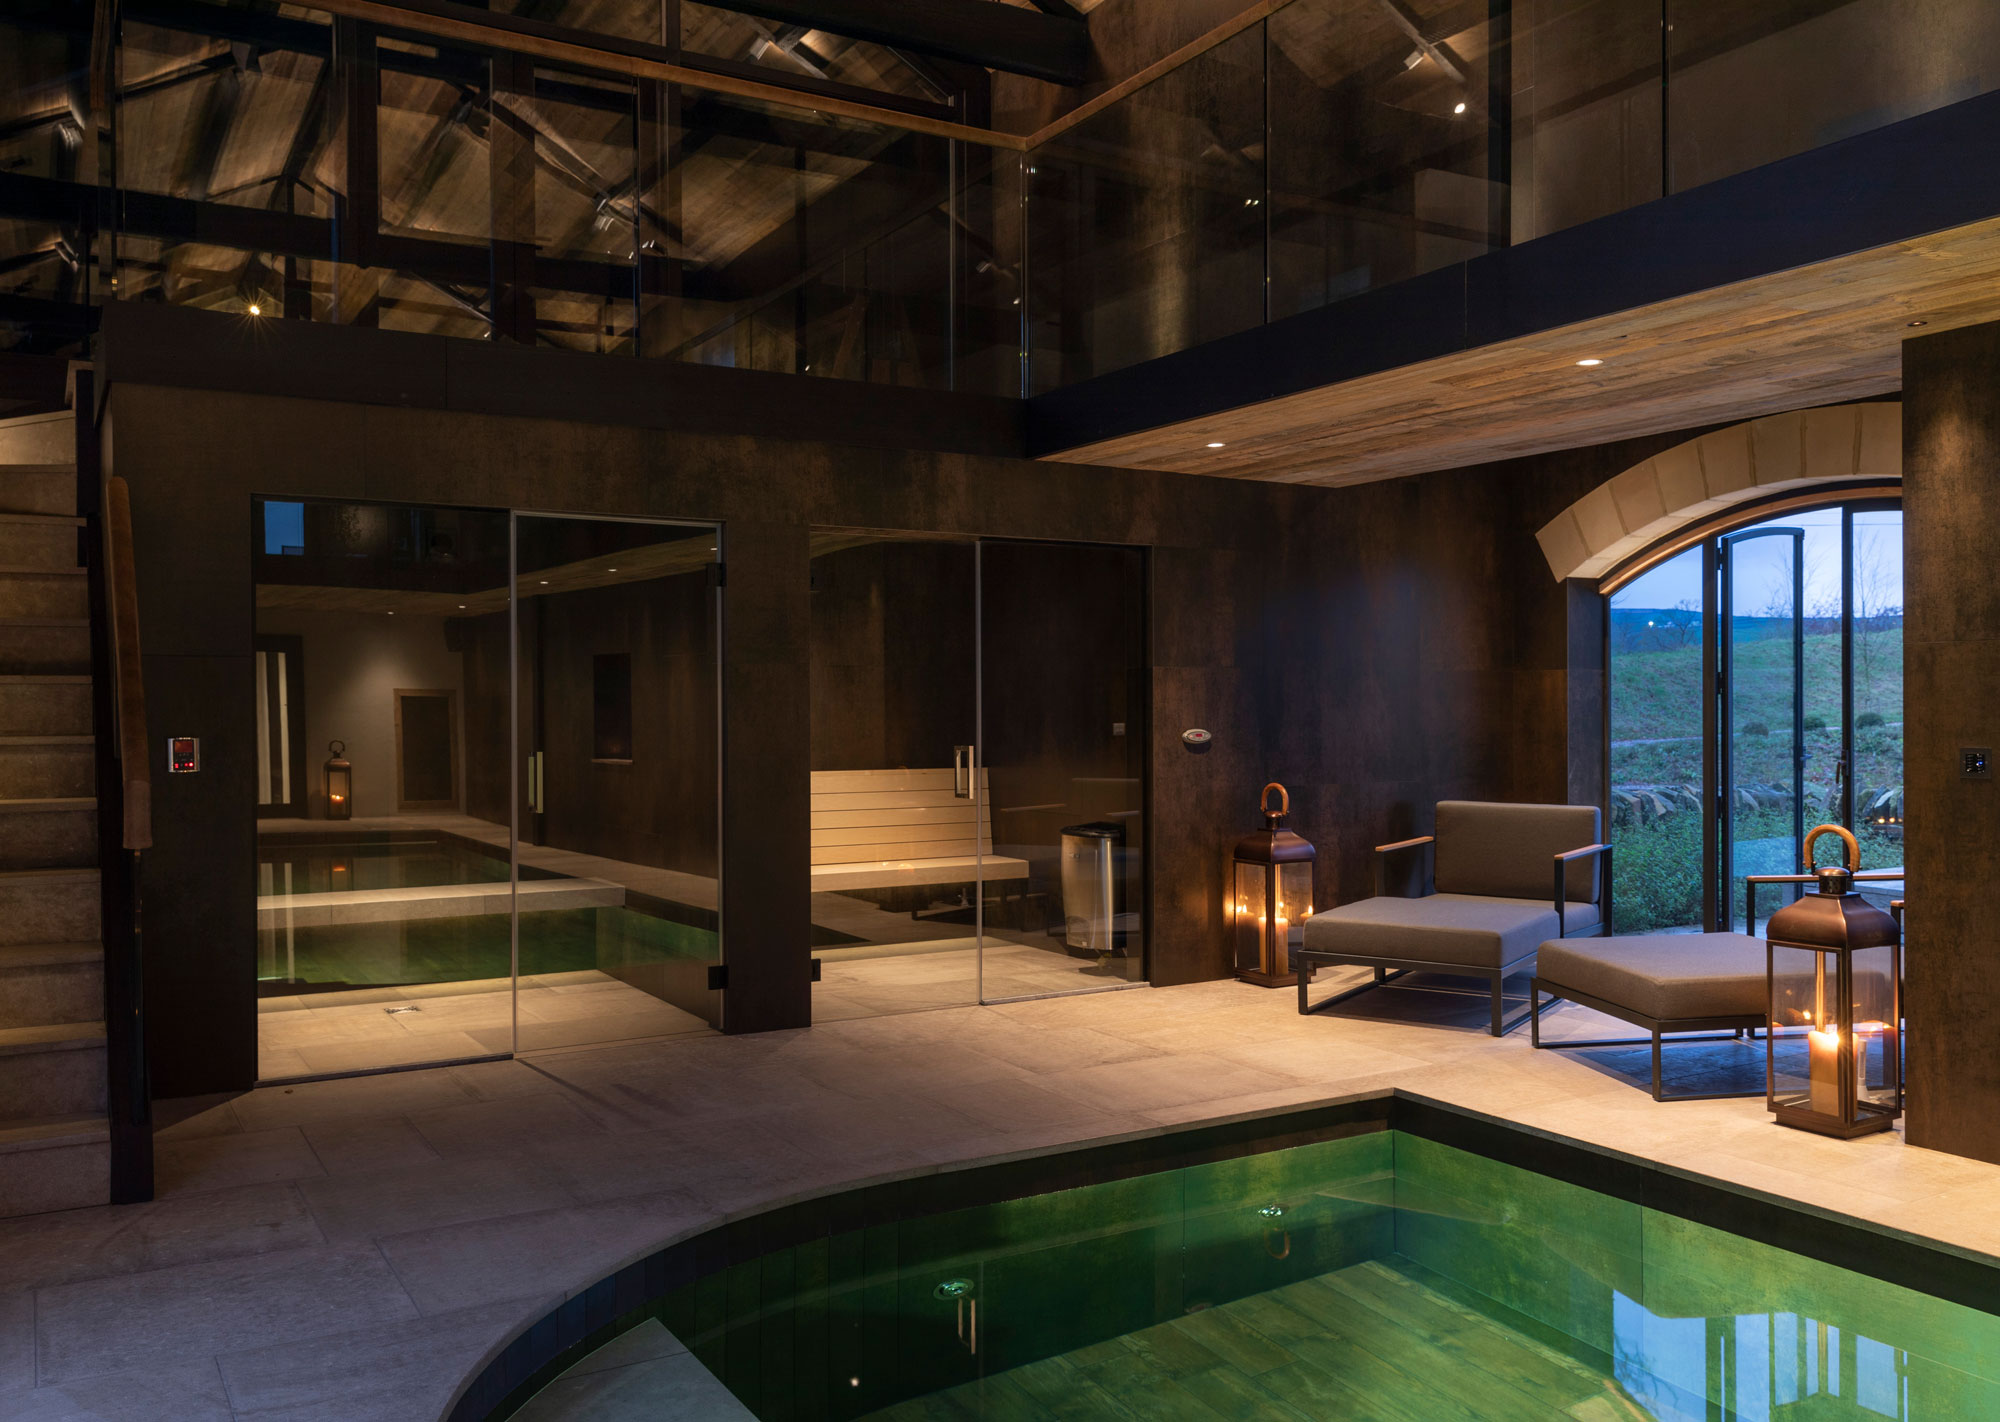 Sauna and steam room with large glass doors